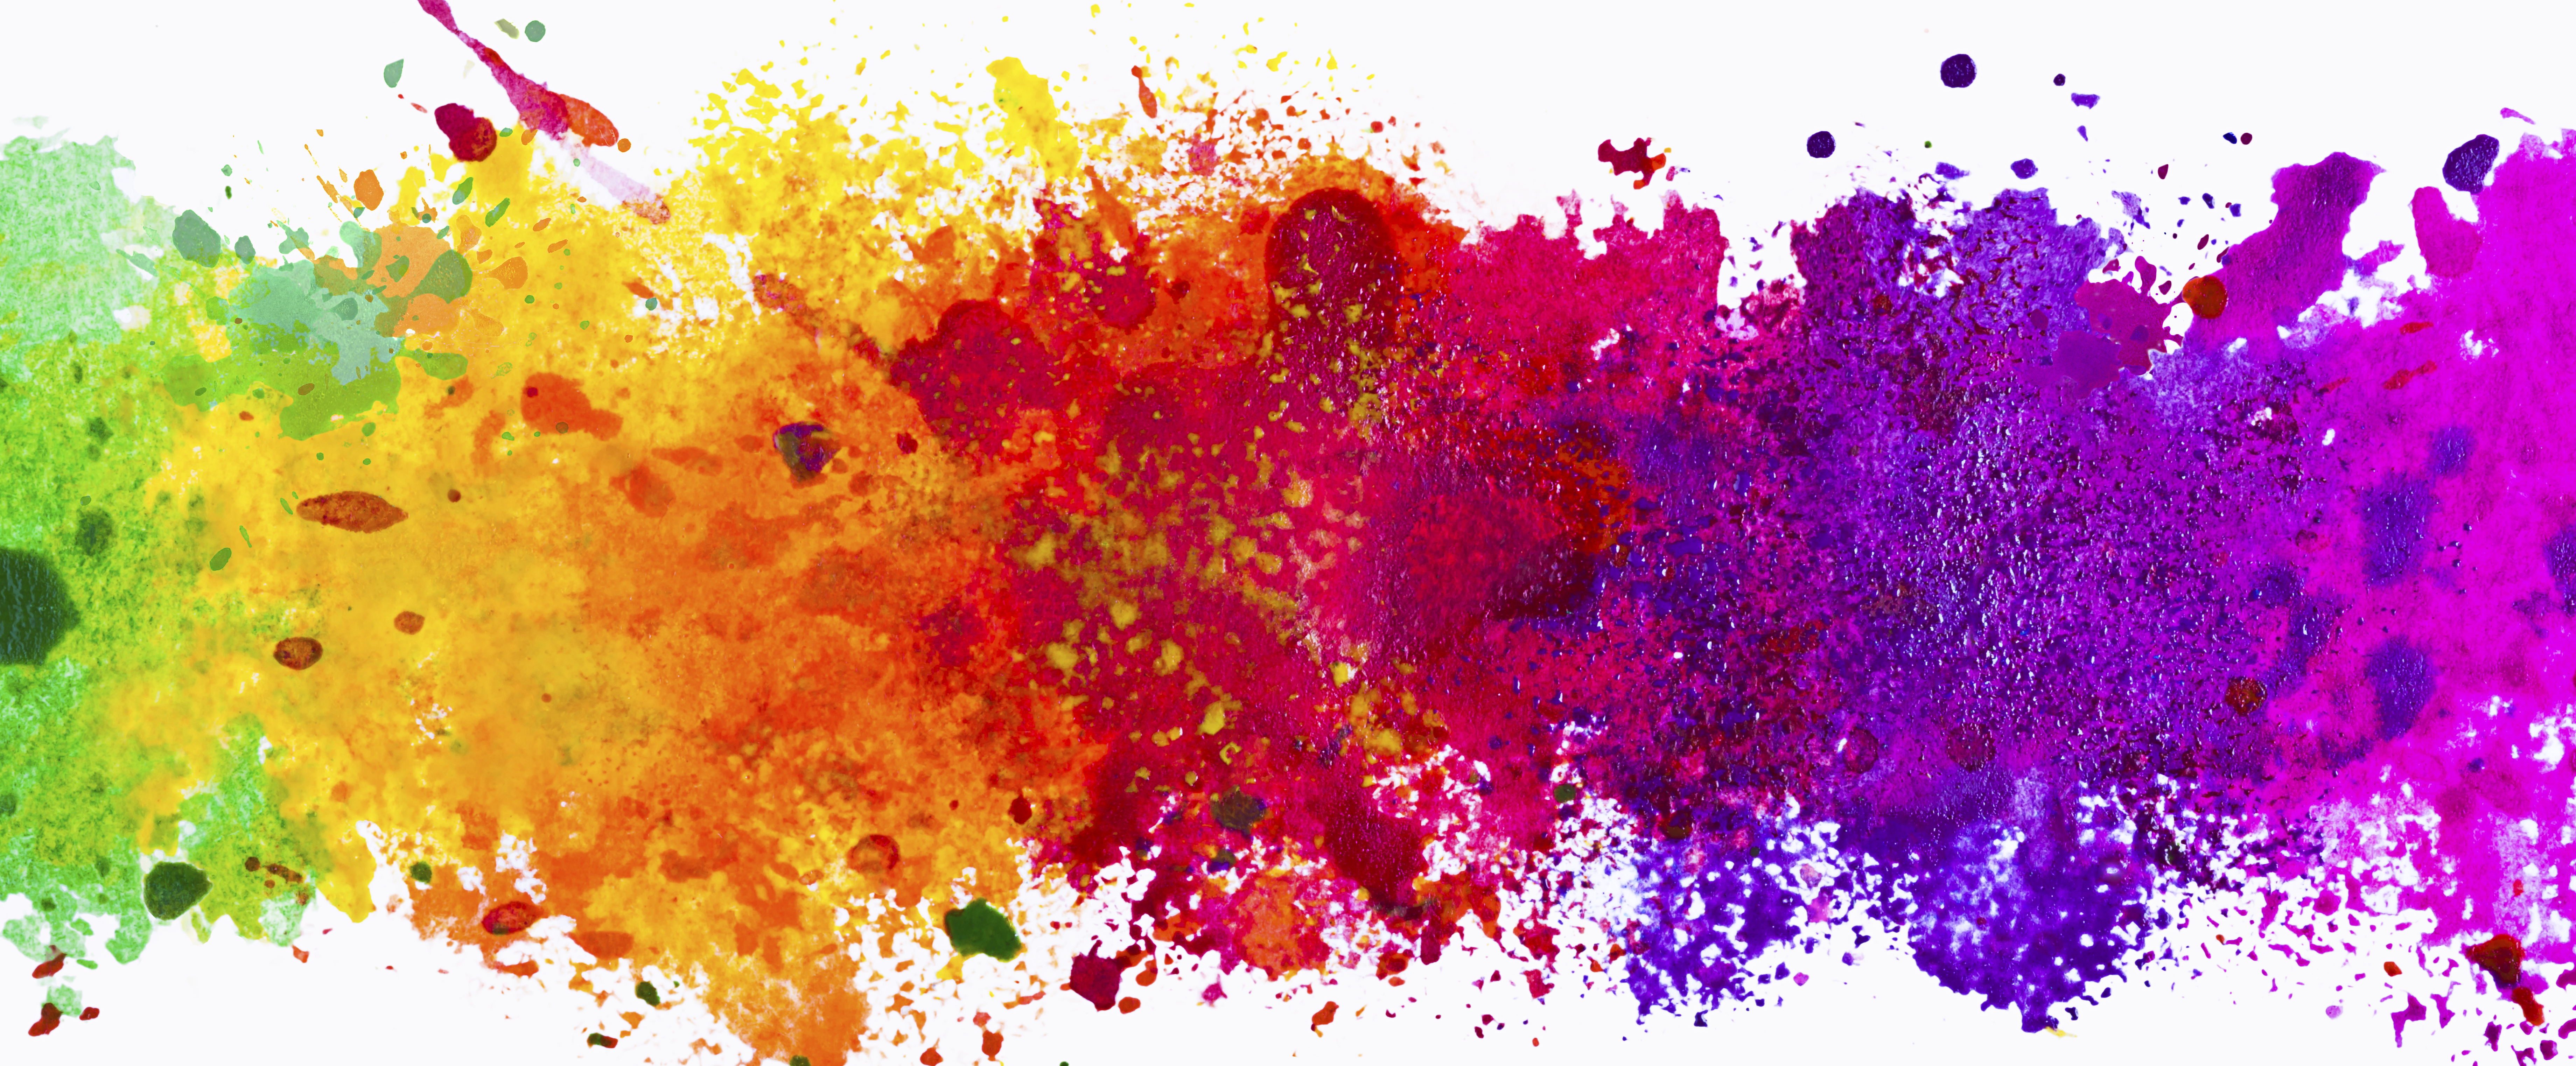 Color theory 101 how to choose the right colors for your designs nvjuhfo Images